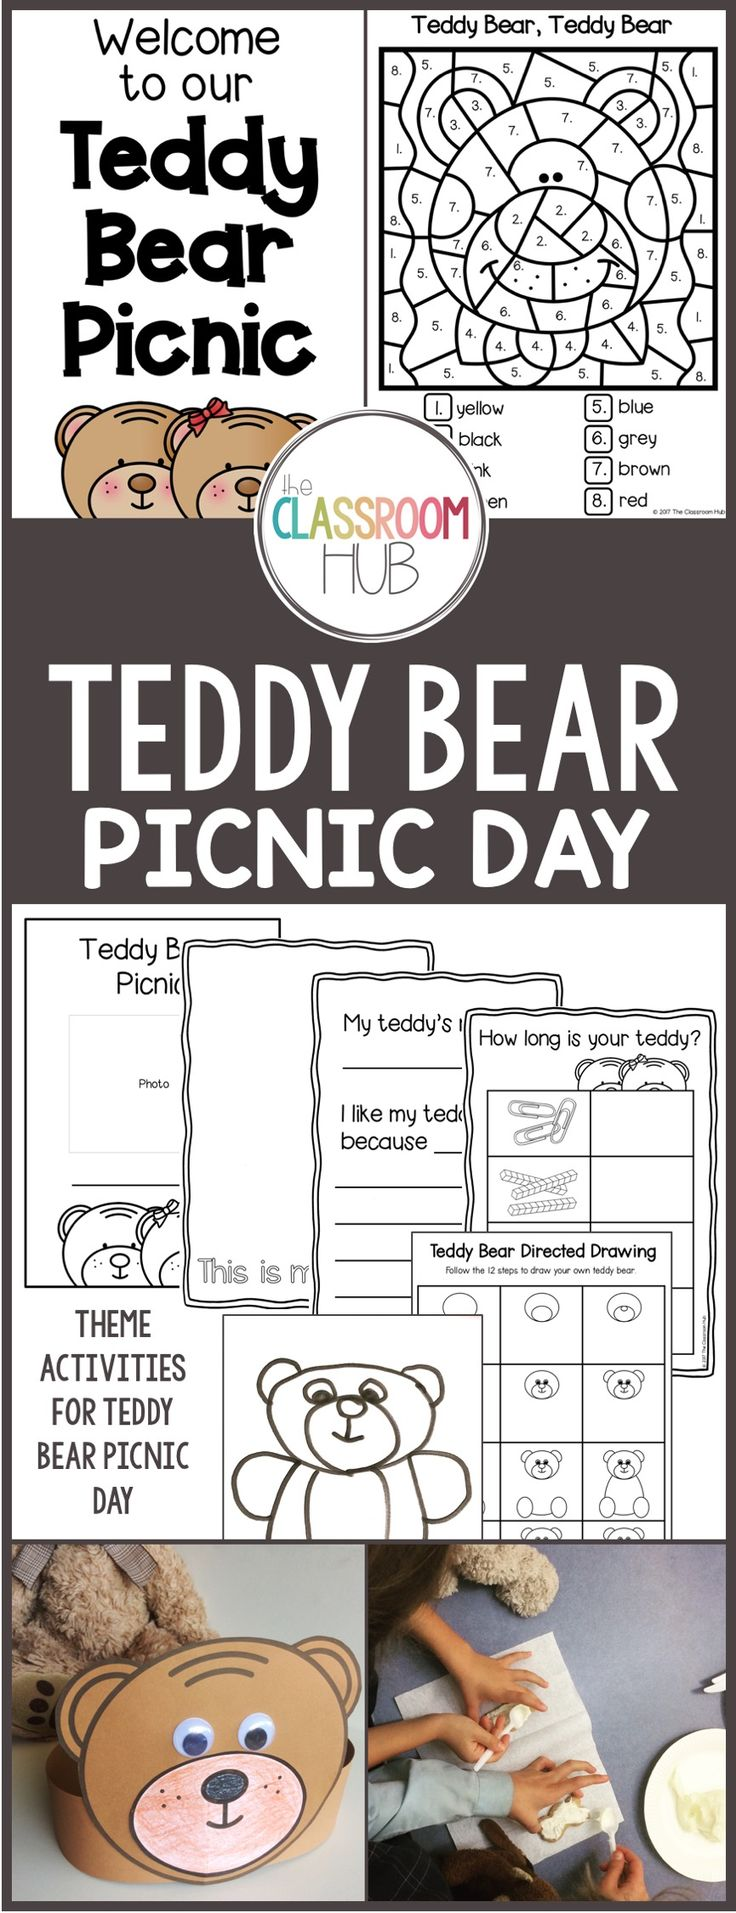 This is a collection of activities for a day or more of Teddy Bear Theme Day activities. The printables can be downloaded and used individually, or printed out and collated into a book for the day.